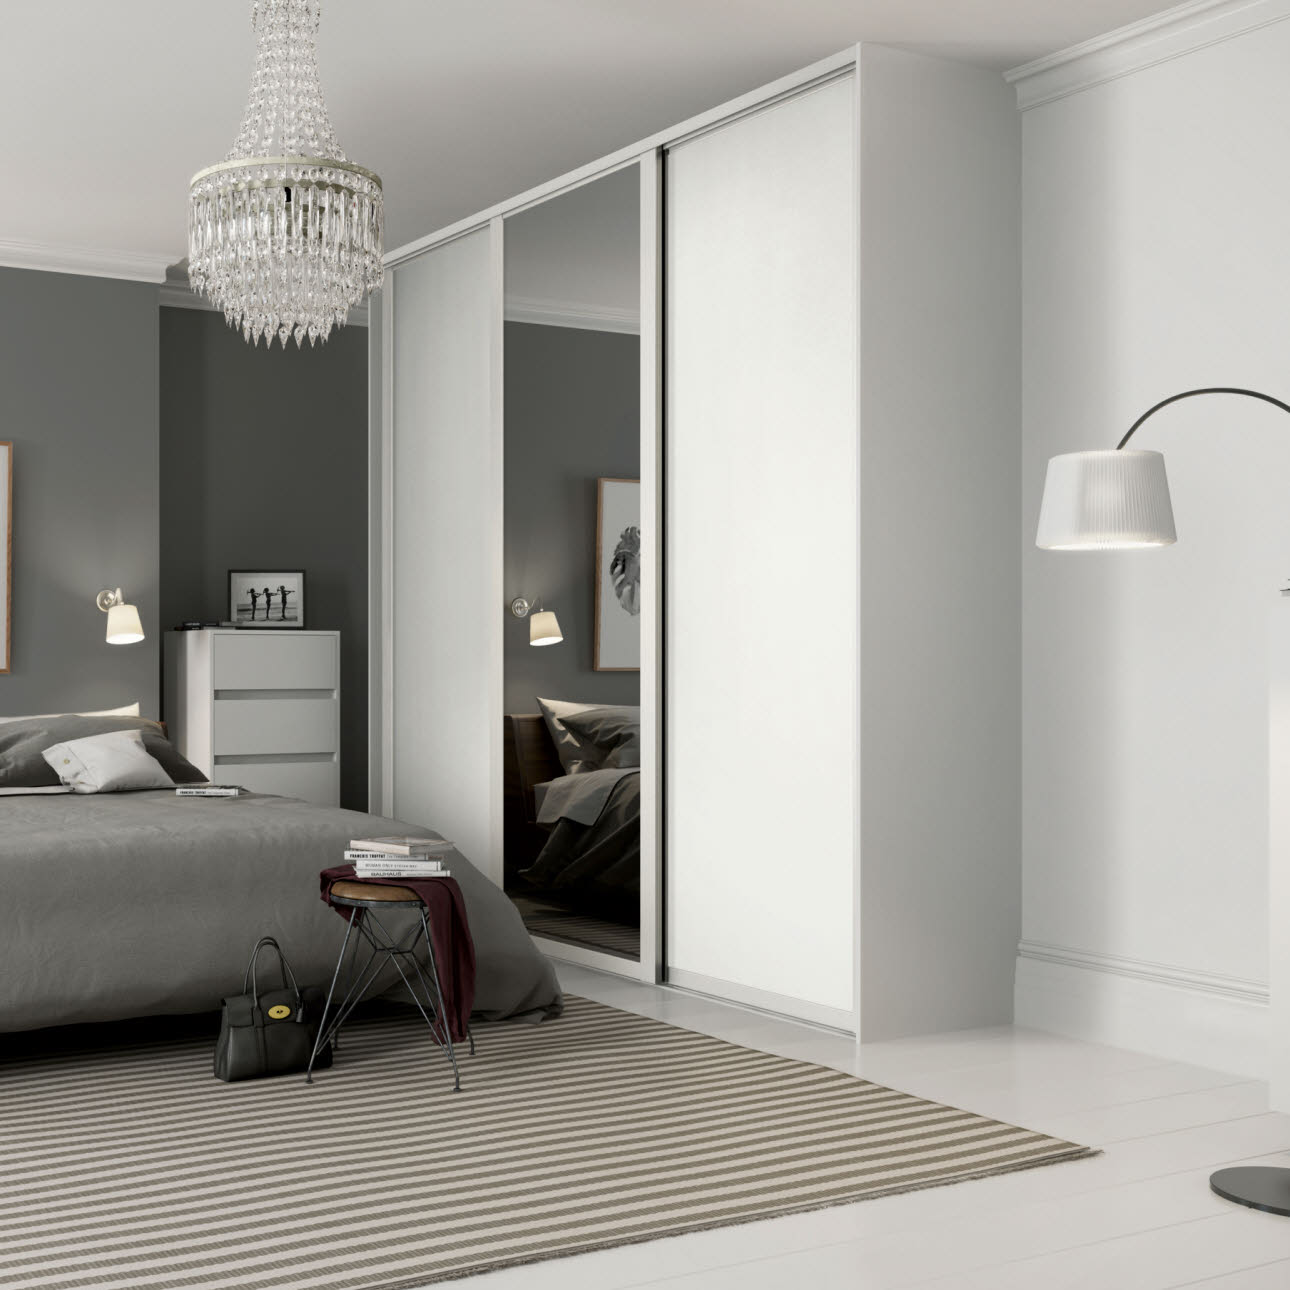 Simple Fitted Bedrooms Liverpool Standard Sized Doors For Decor